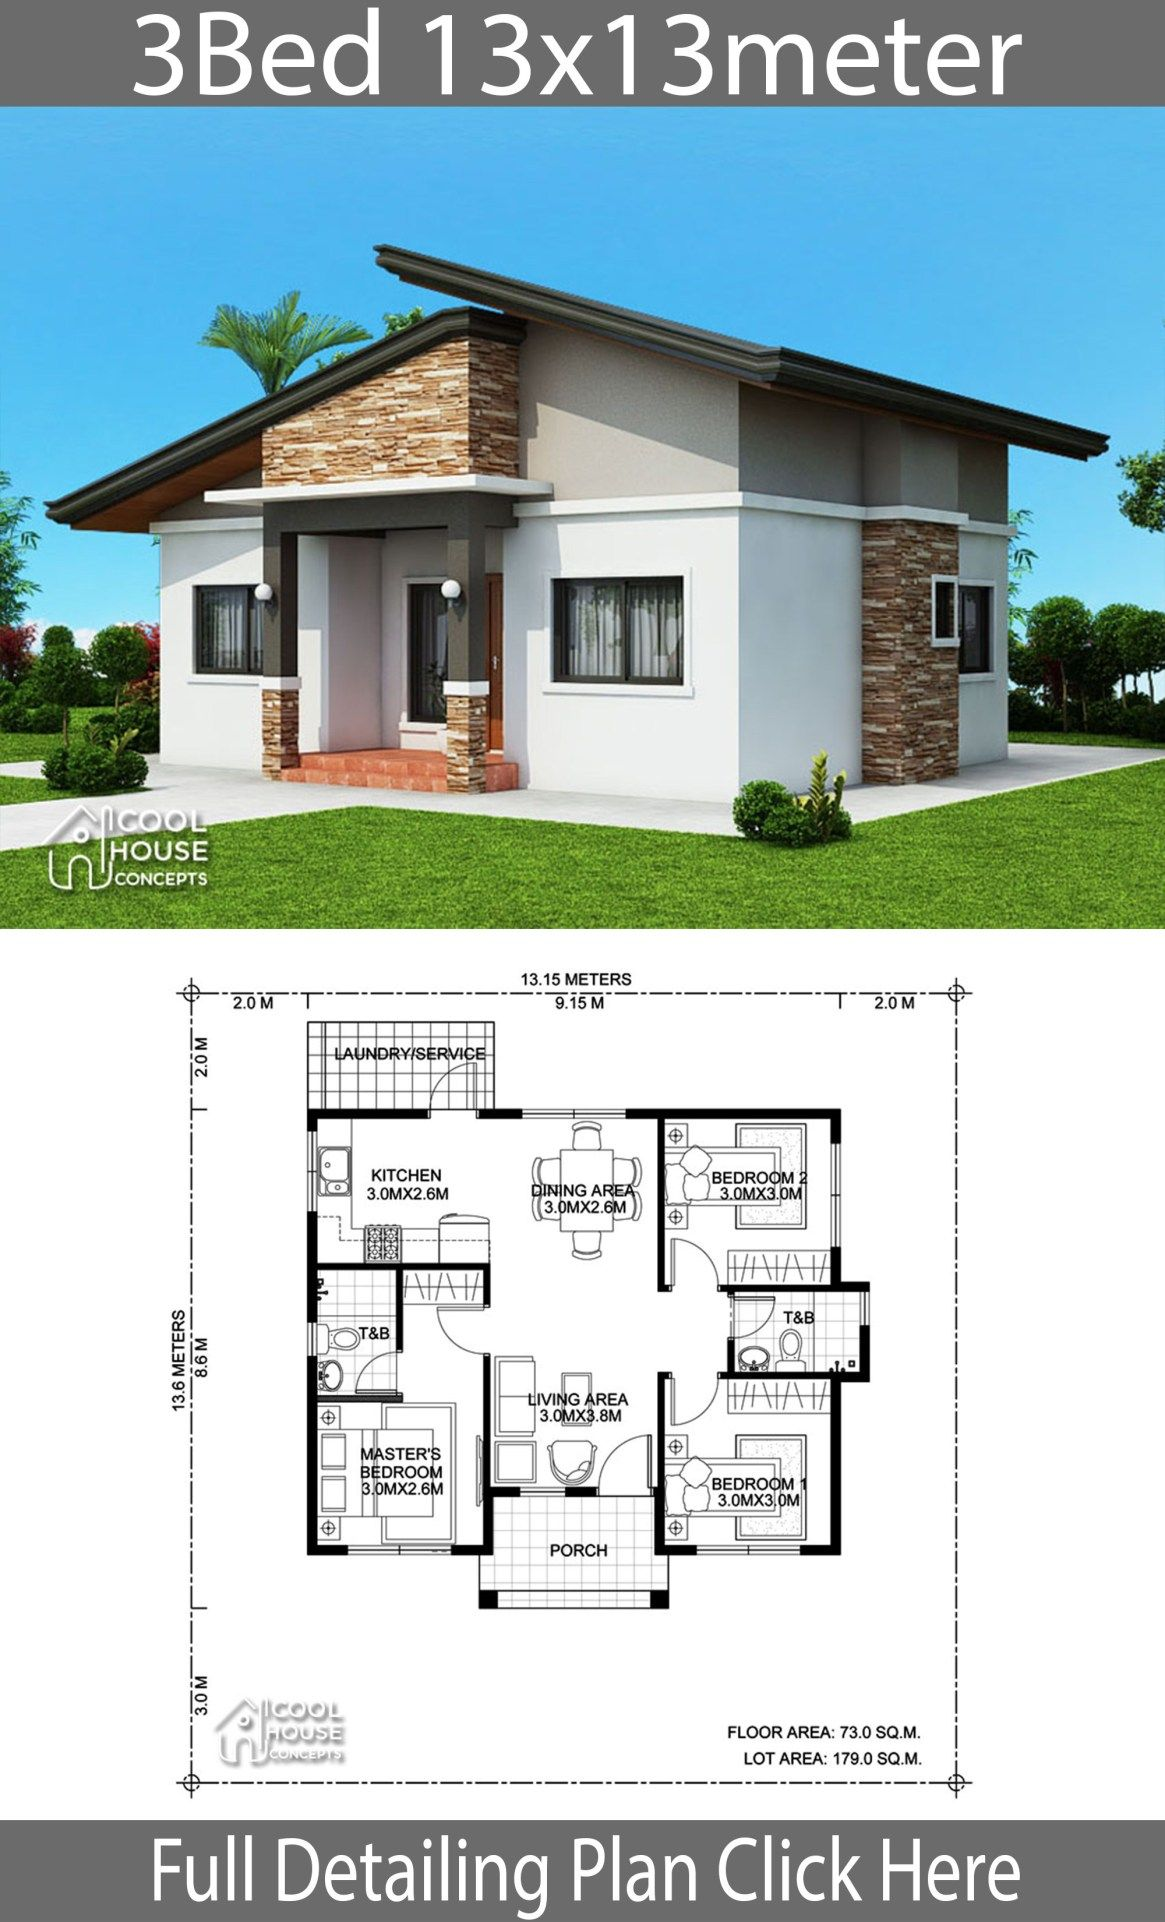 Home Design Plan 13x13m With 3 Bedrooms Home Design With Plansearch Bungalow House Plans Modern Bungalow House Model House Plan